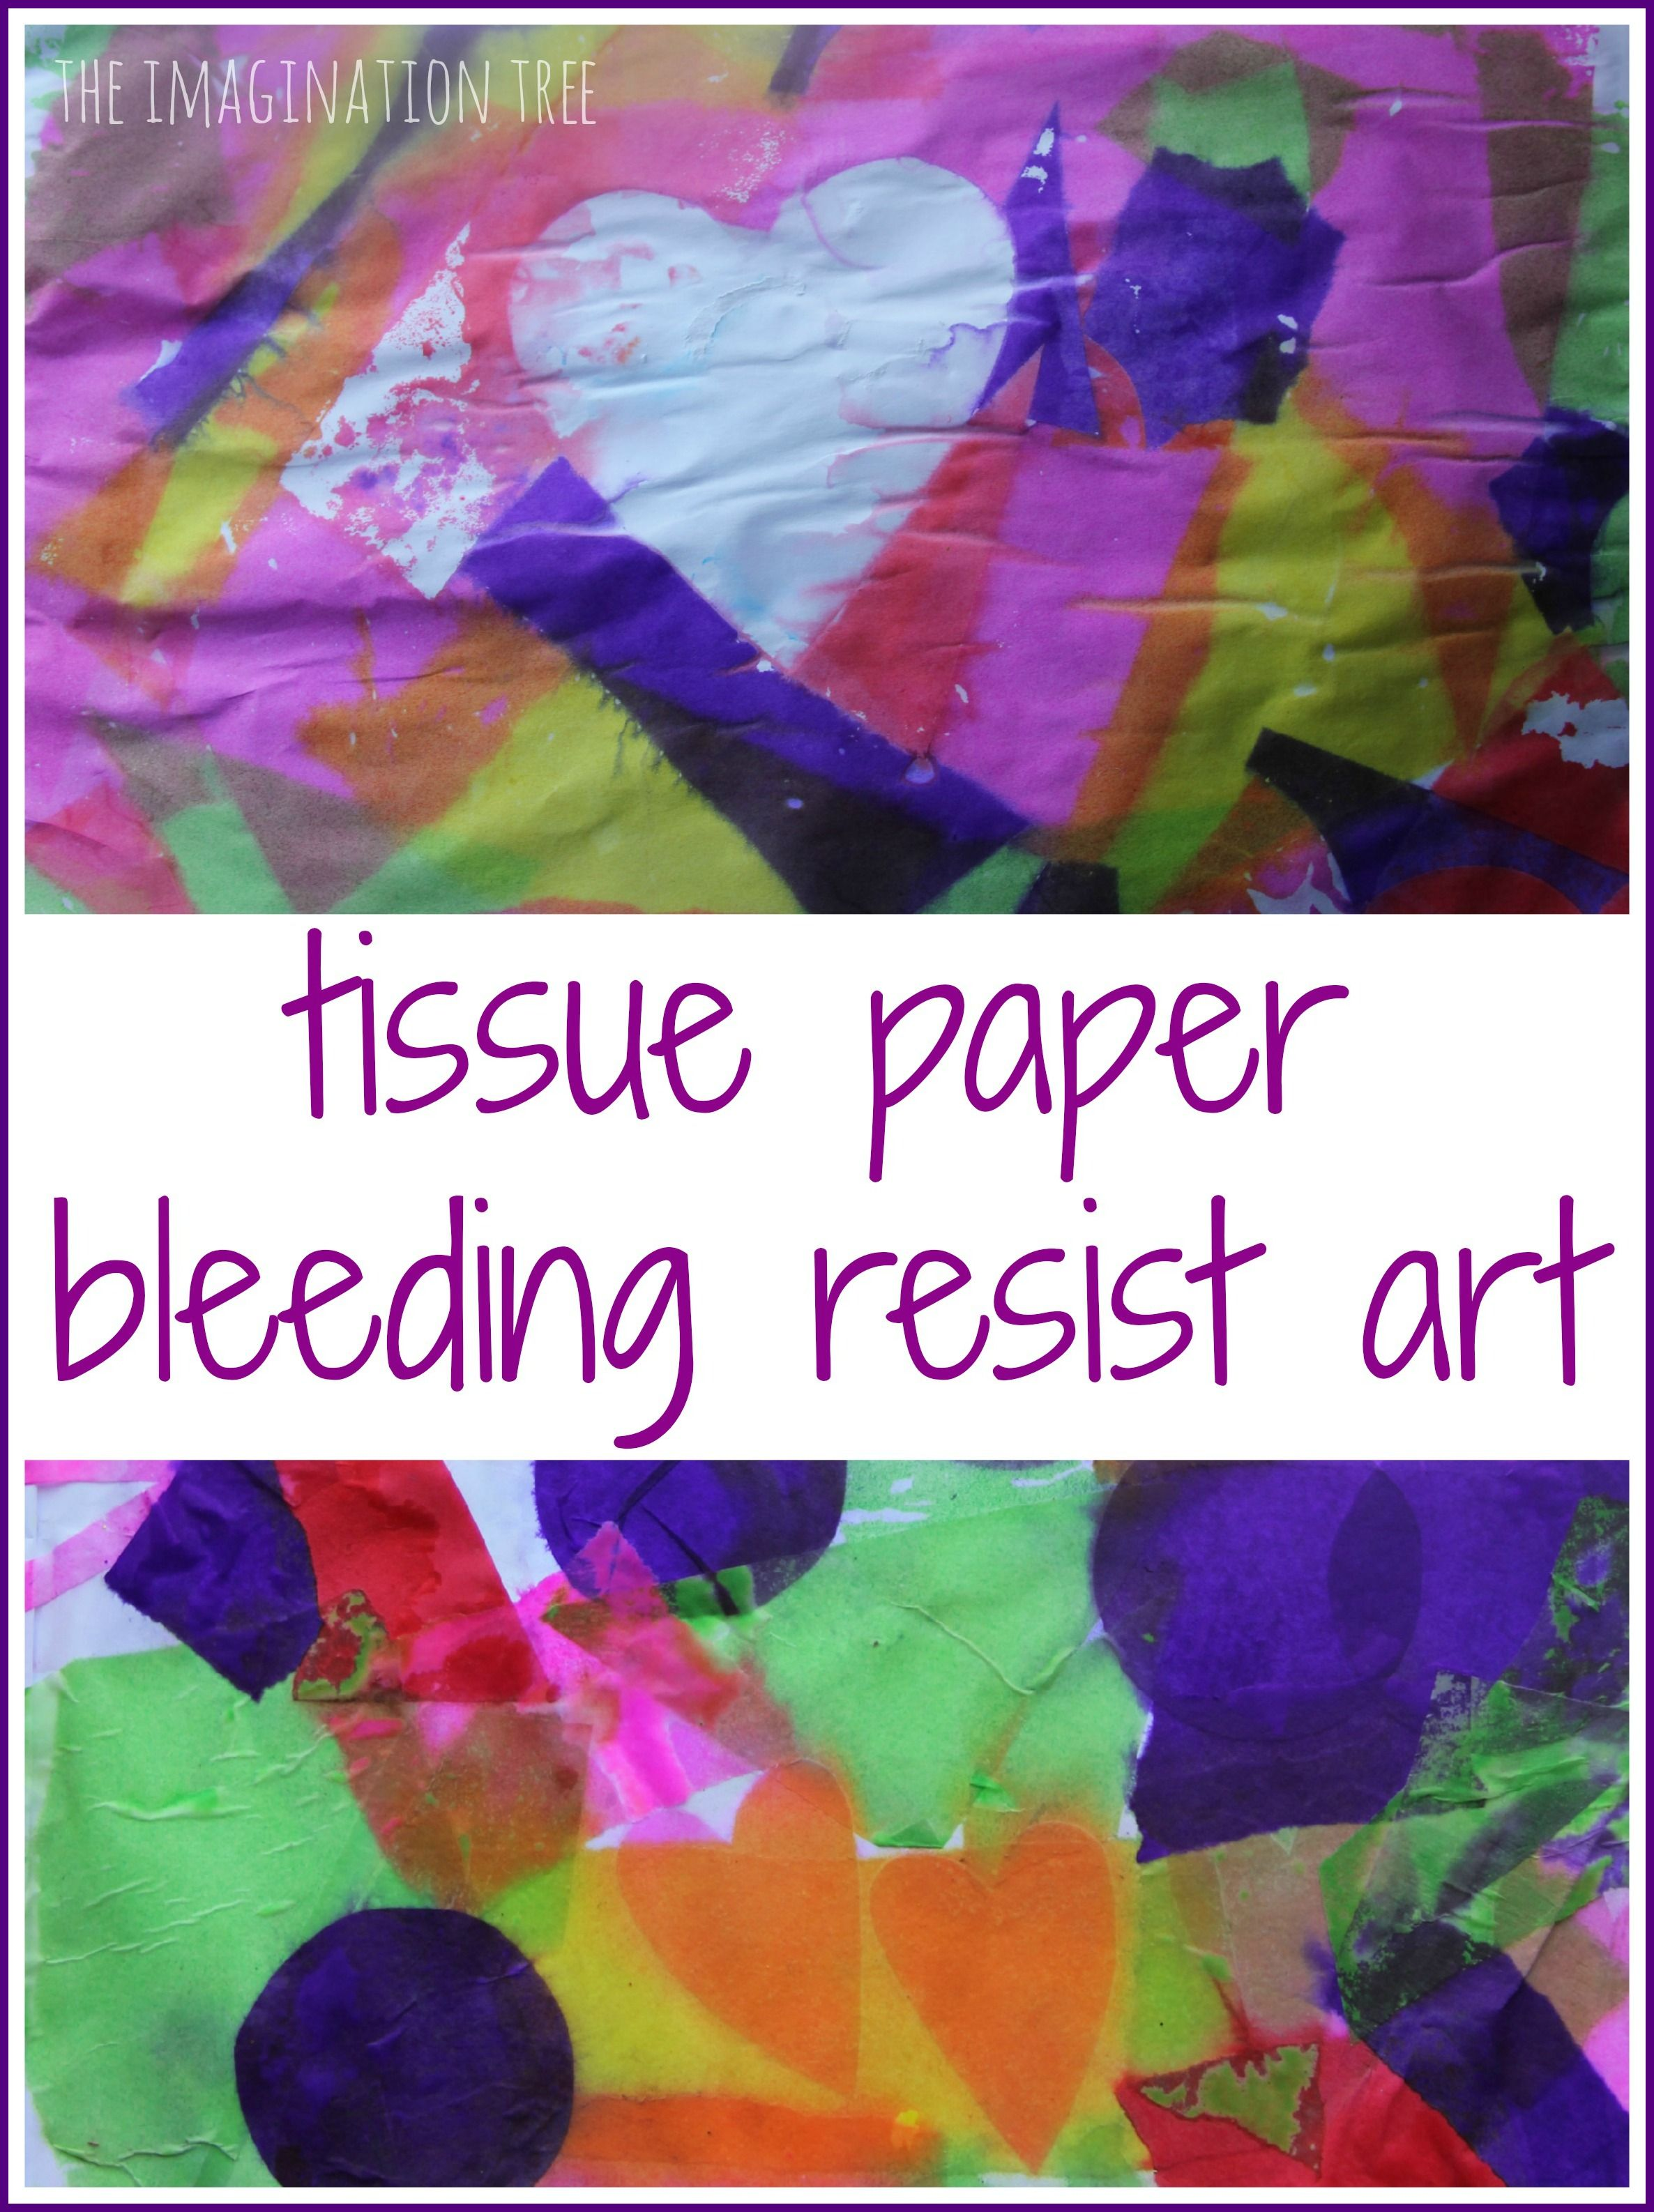 Tissue Paper Crafts: 50 DIY Ideas You Can Make With the Kids